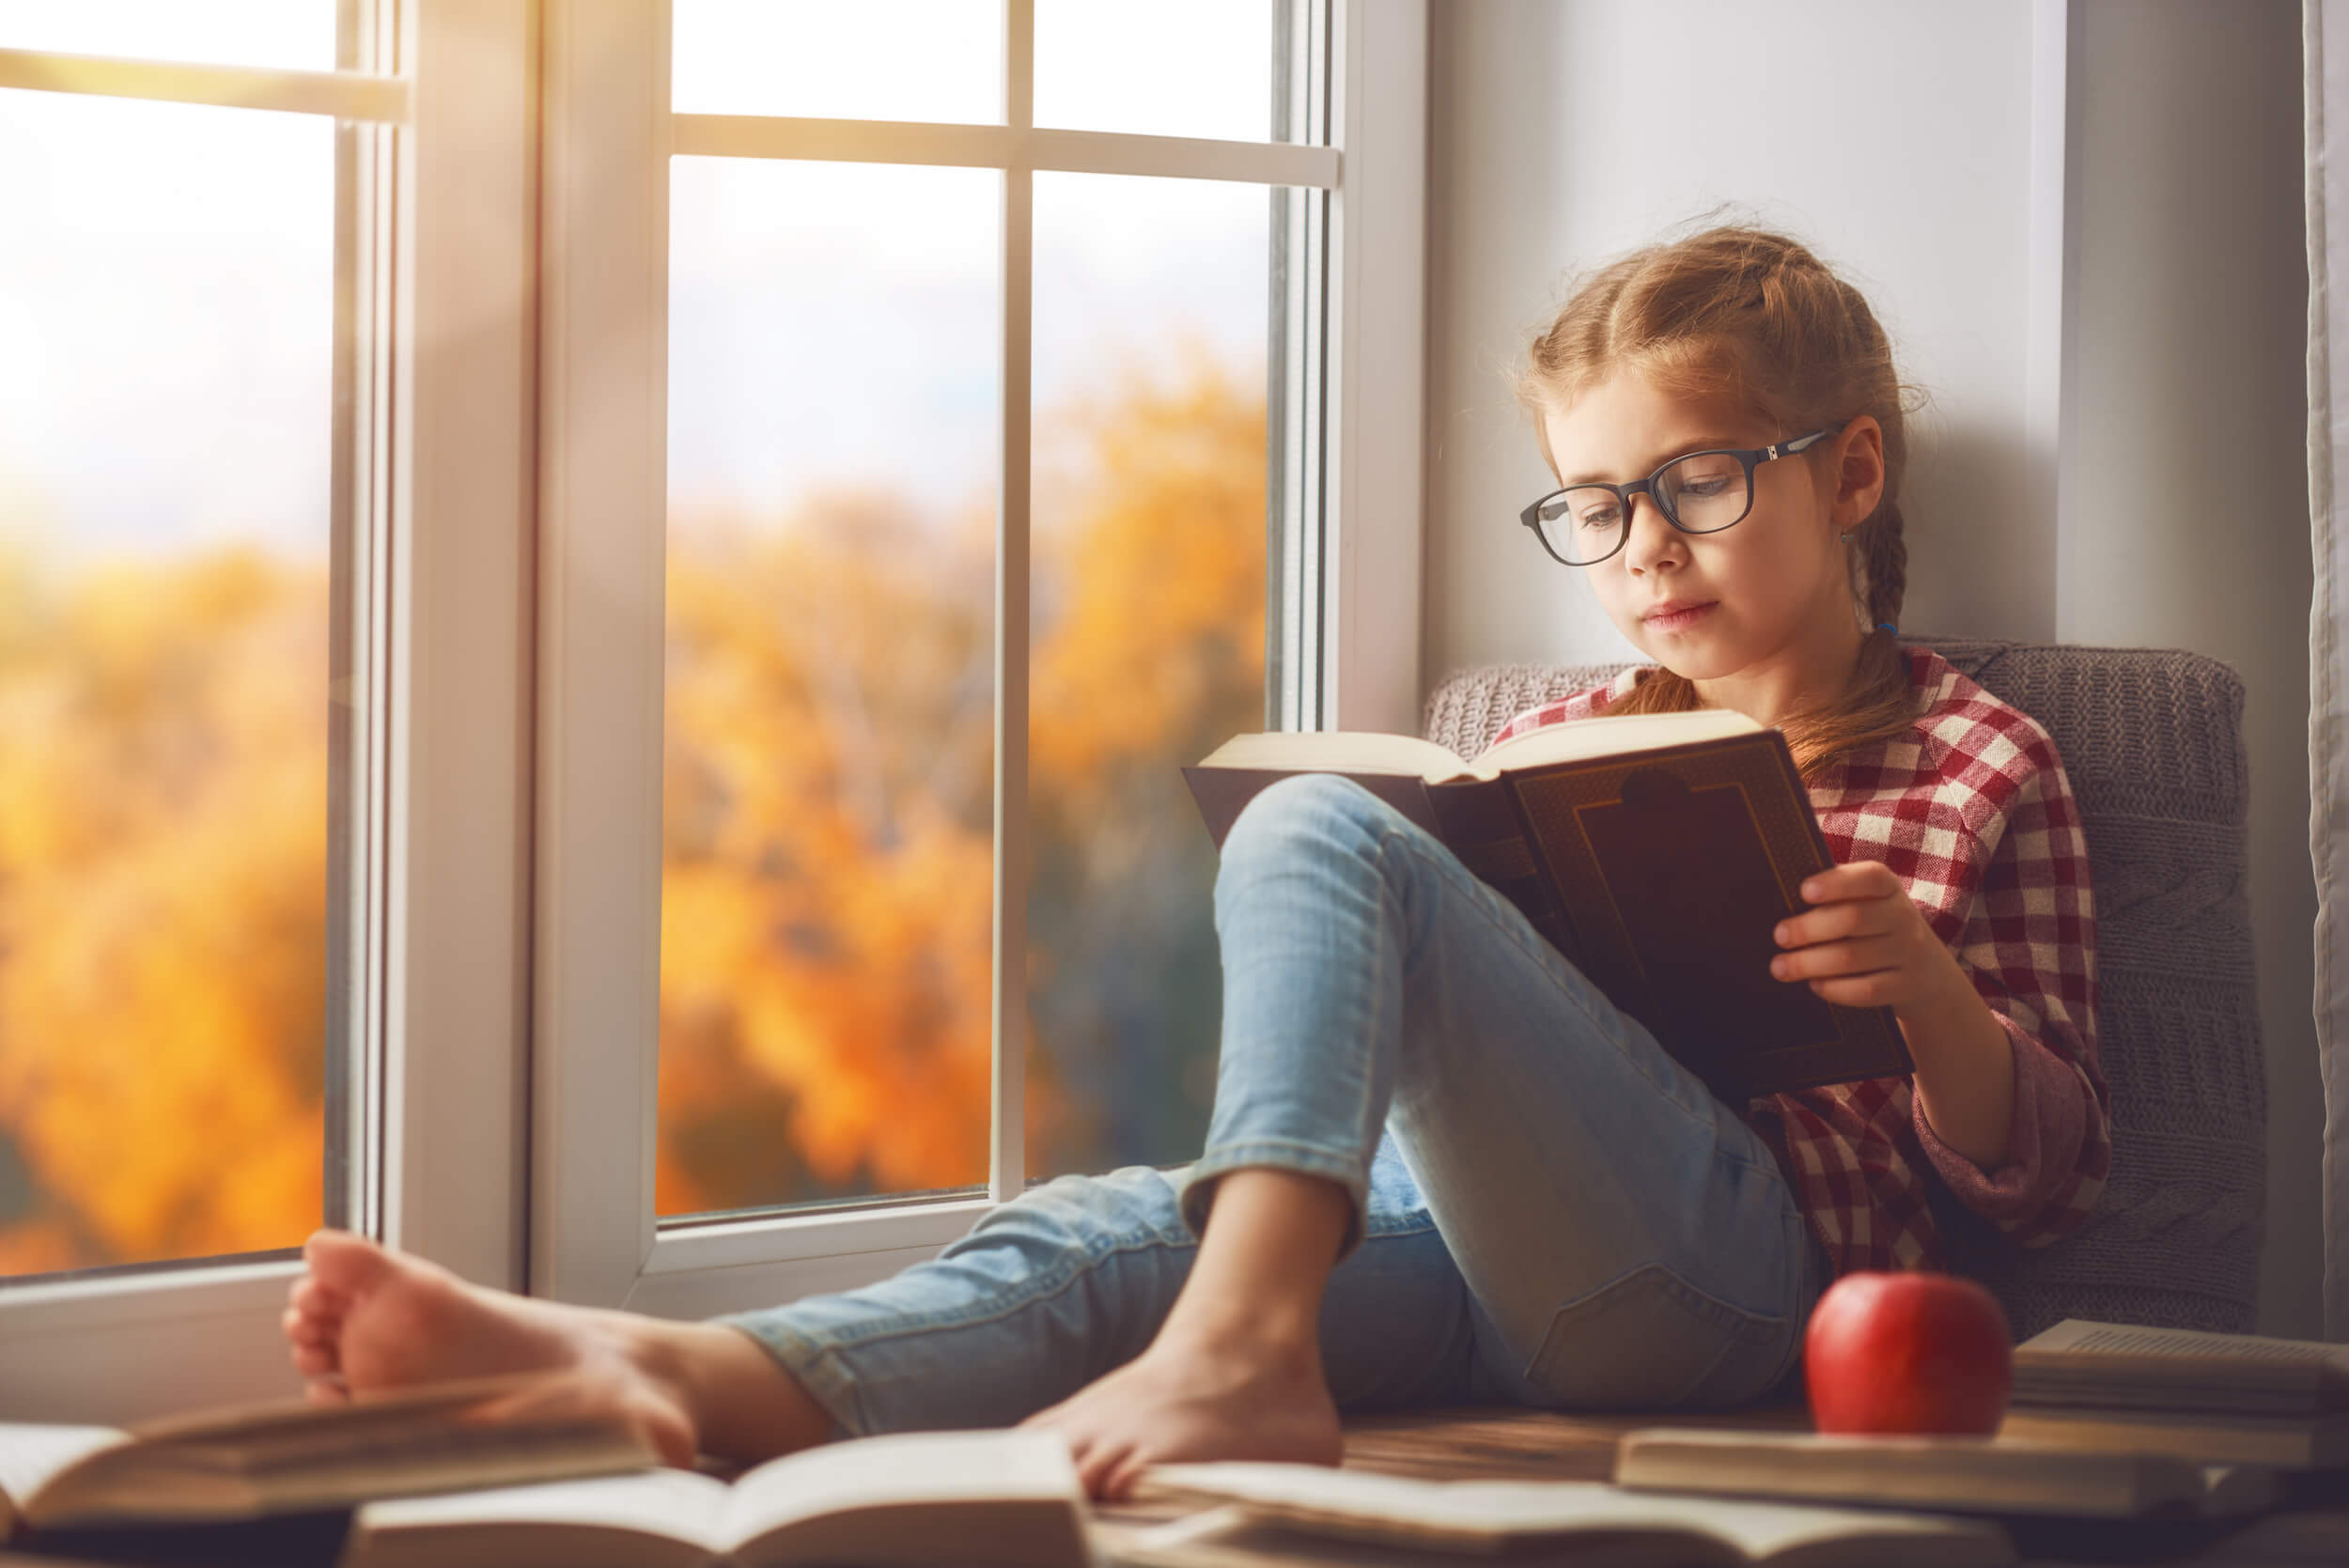 Young girl studying by windows with fall colors outside | Home Windows | Window Makeover